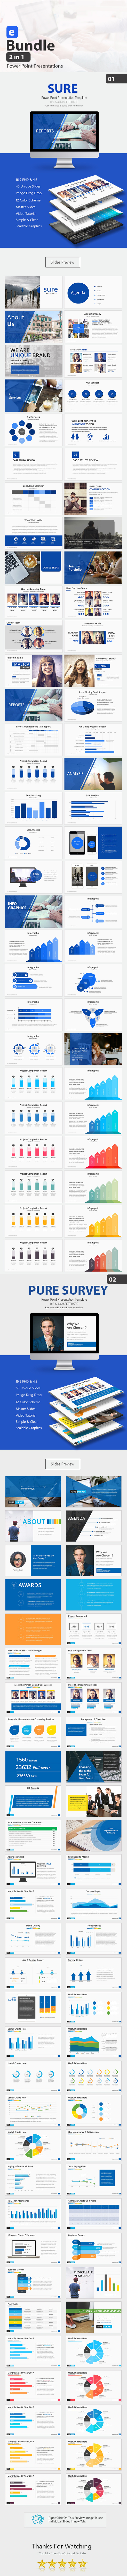 E Bundle 2 in 1 Power Point Presentation - Business PowerPoint Templates